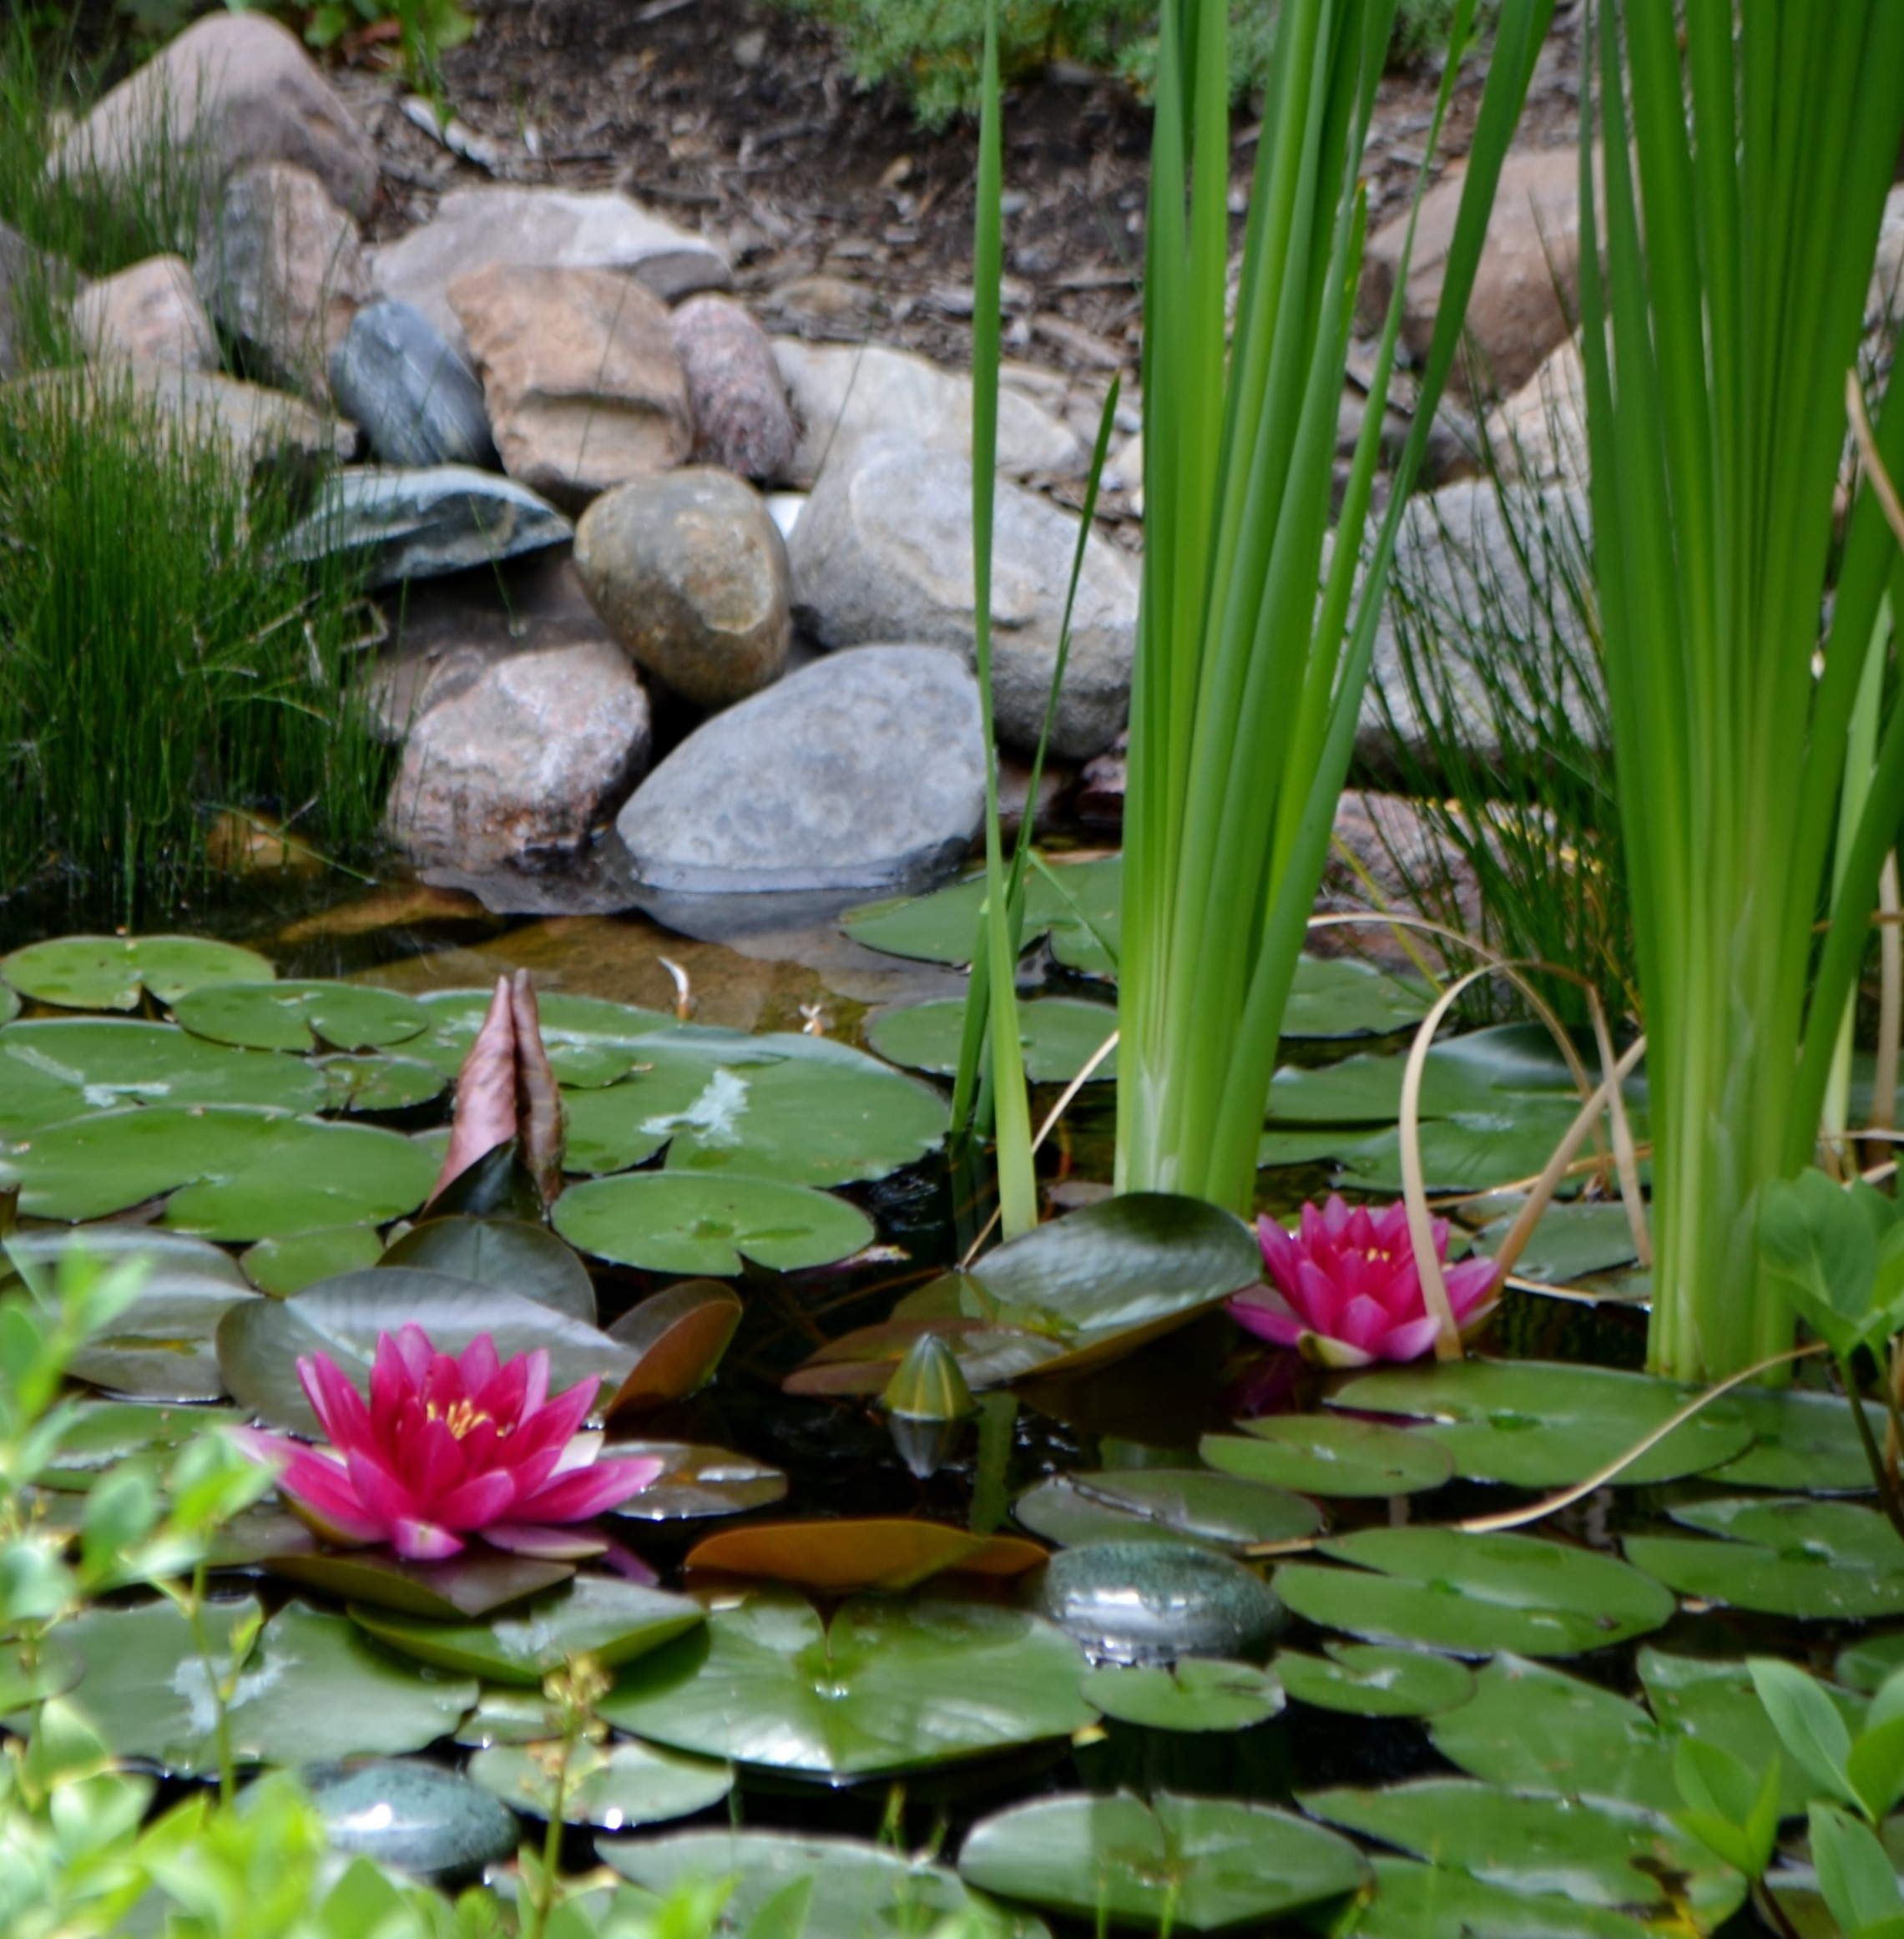 Each Yearu0027s Tour Is Self Guided. Your Ticket Will Include The Gardens,  Their Addresses With Driving Directions, And A Brief Description Of What  Makes Each ...